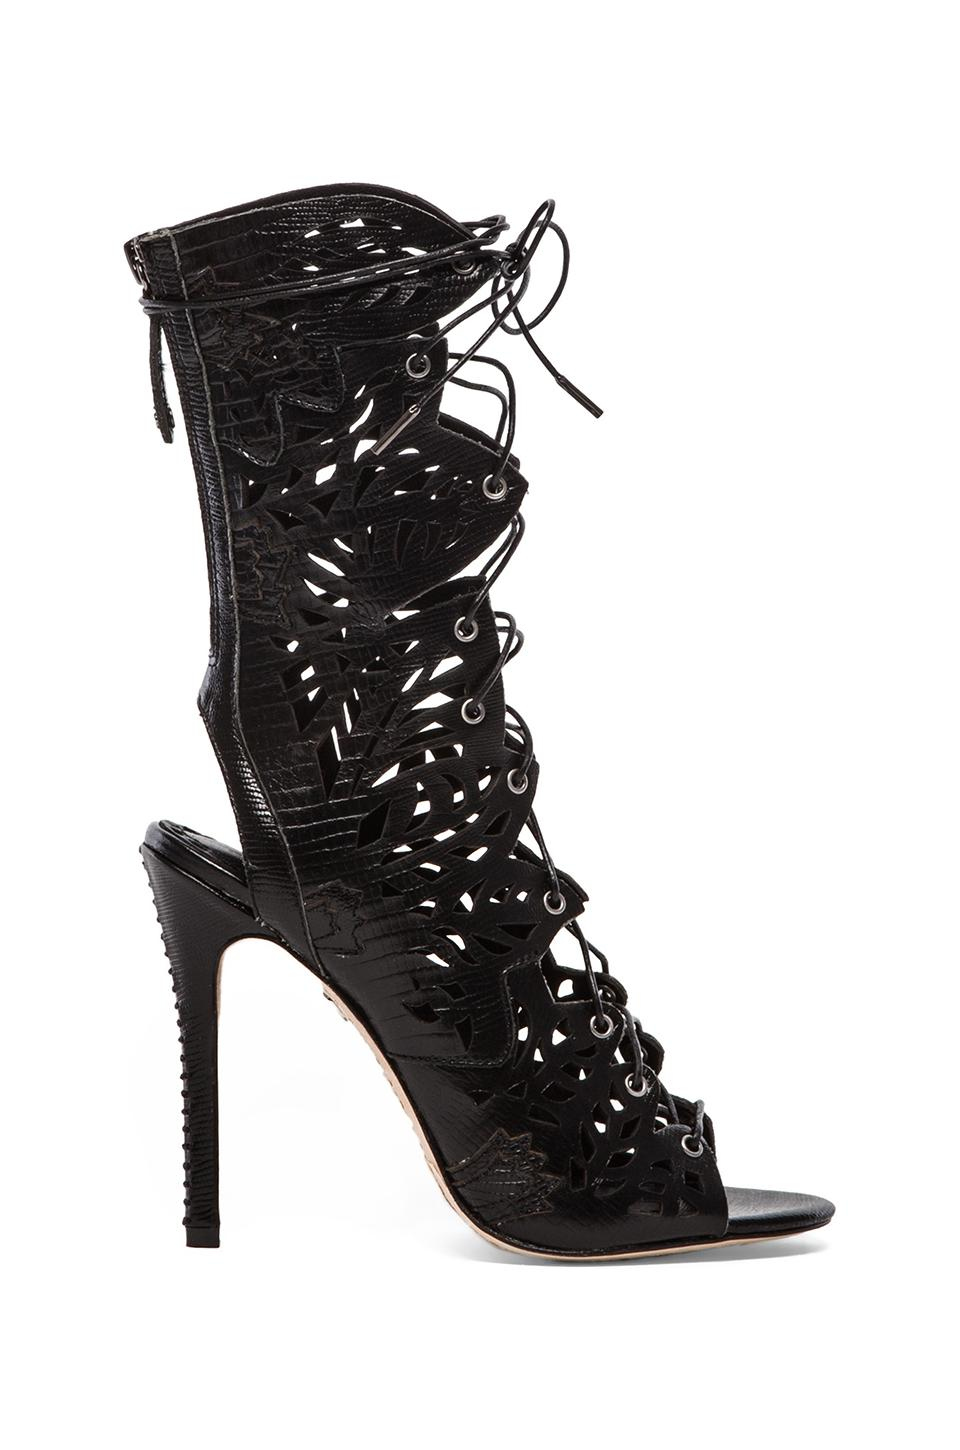 Alice + Olivia Georgia Heel in Black